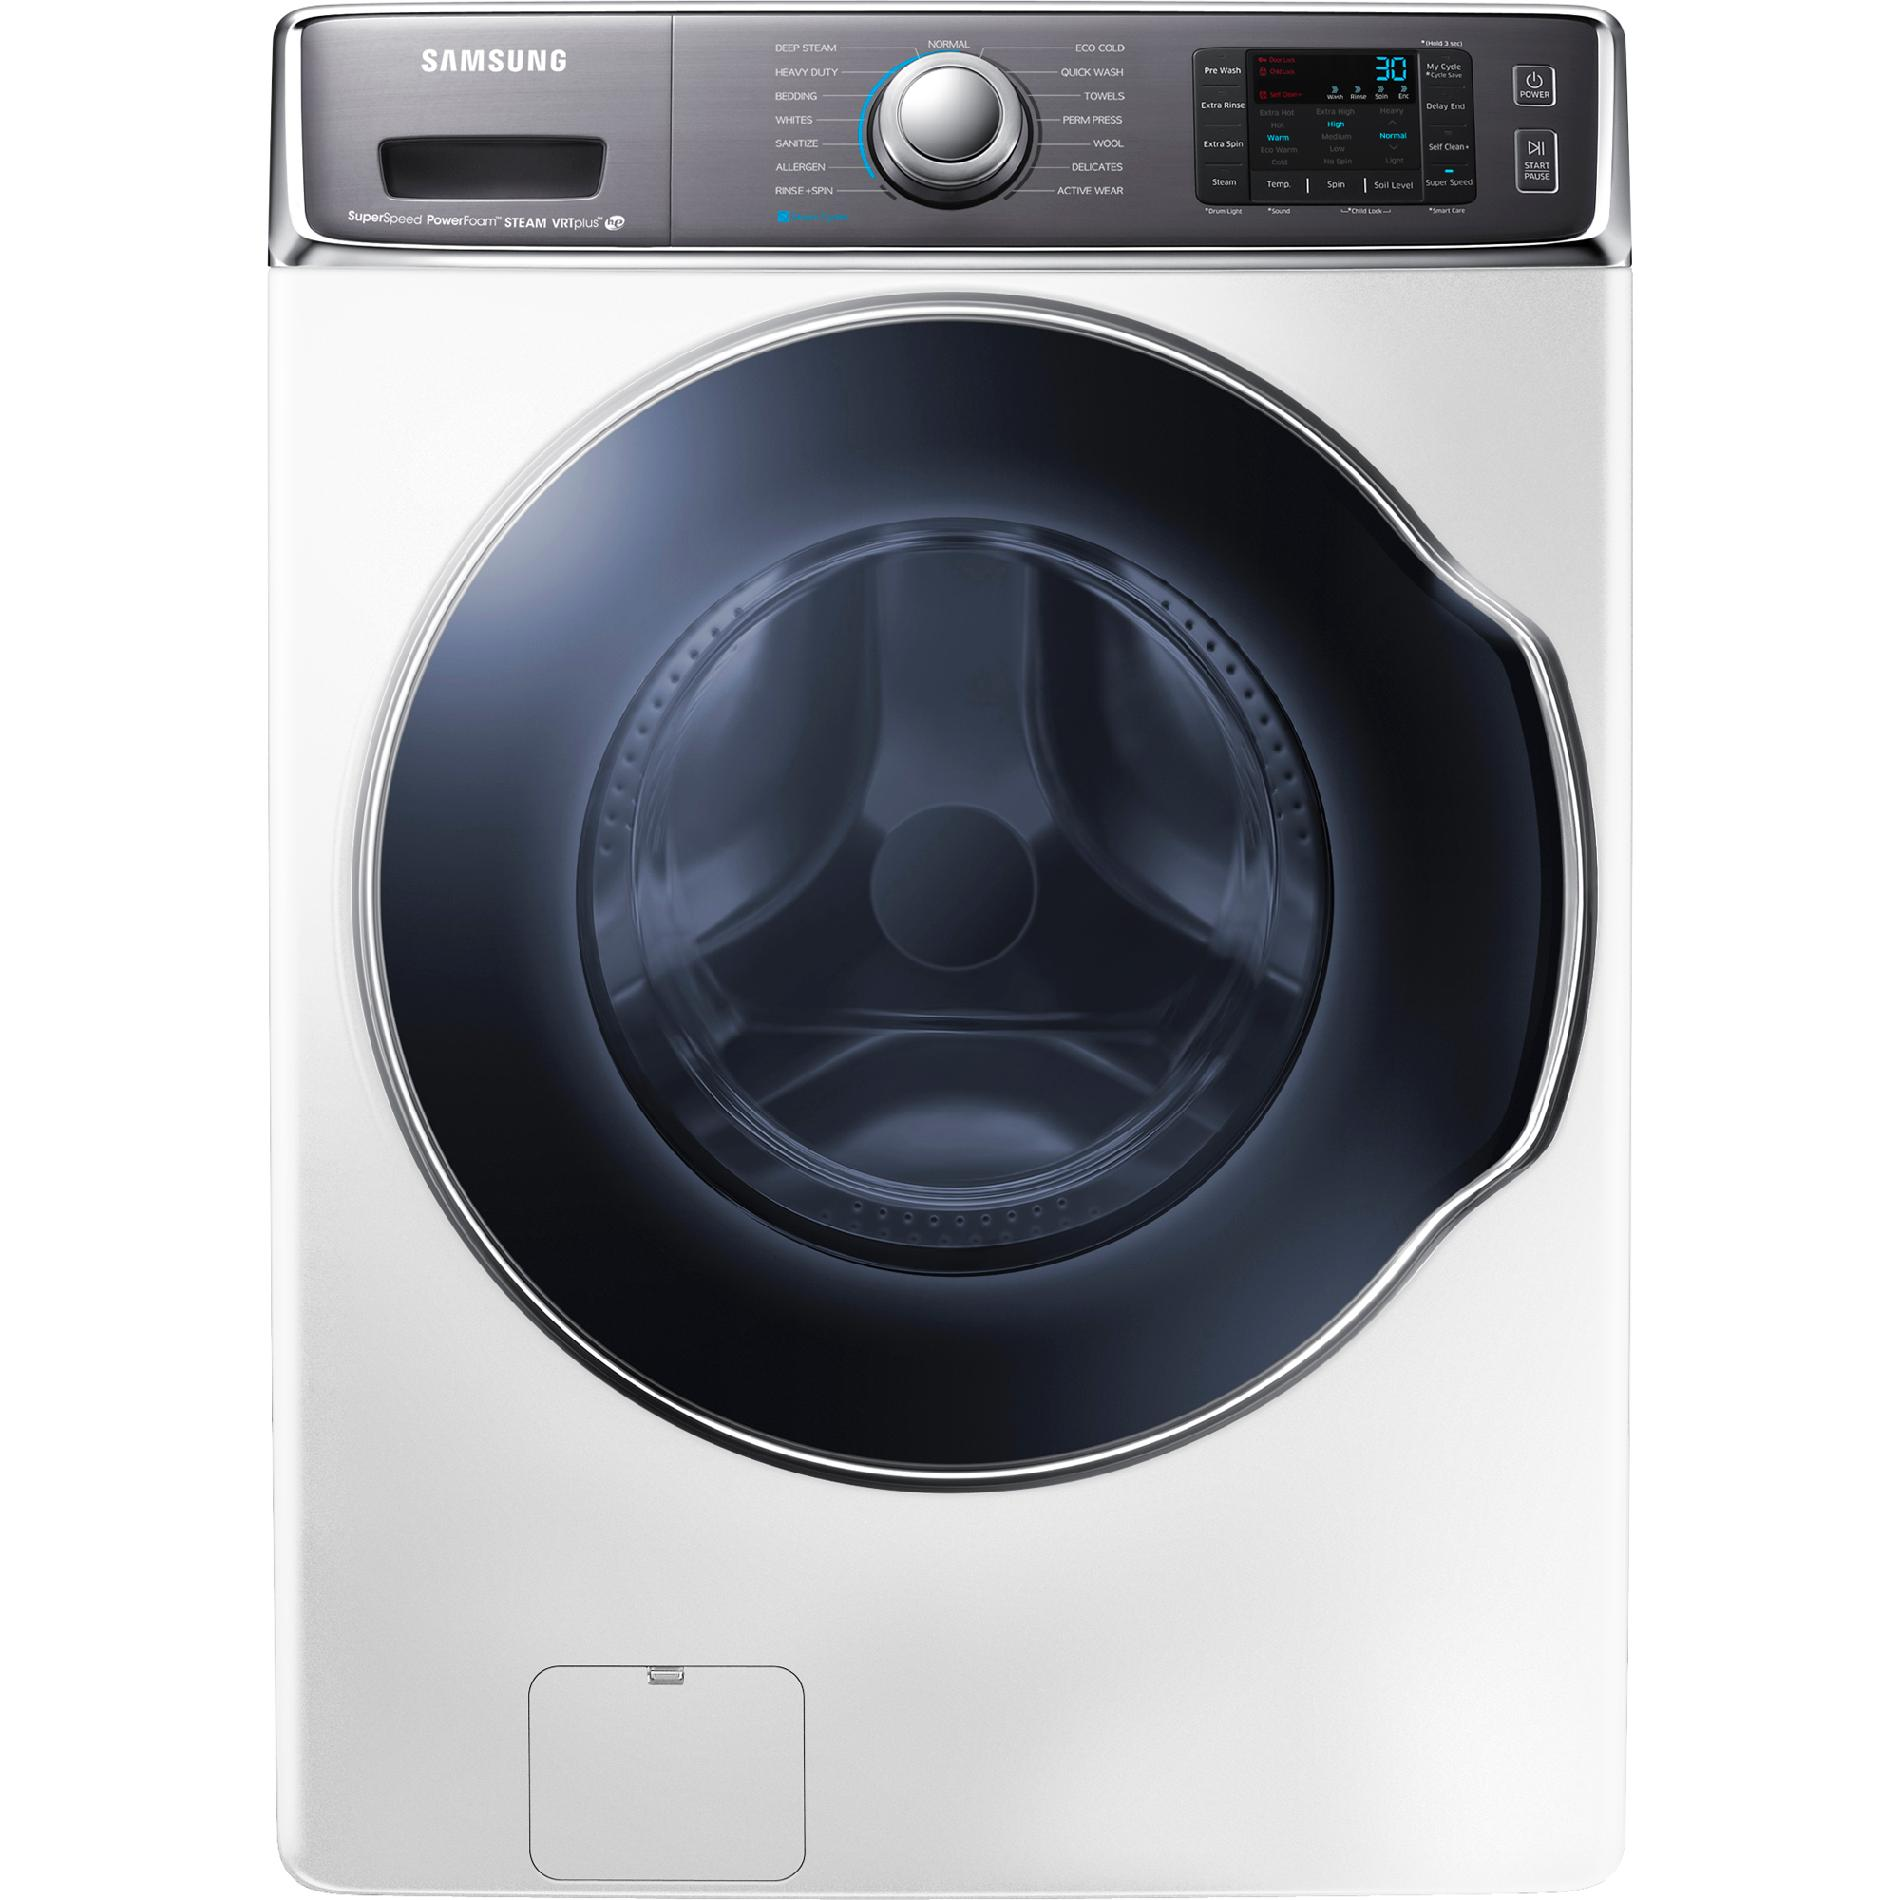 WF56H9100AW 5.6 cu. ft. Front-Load Washer - White